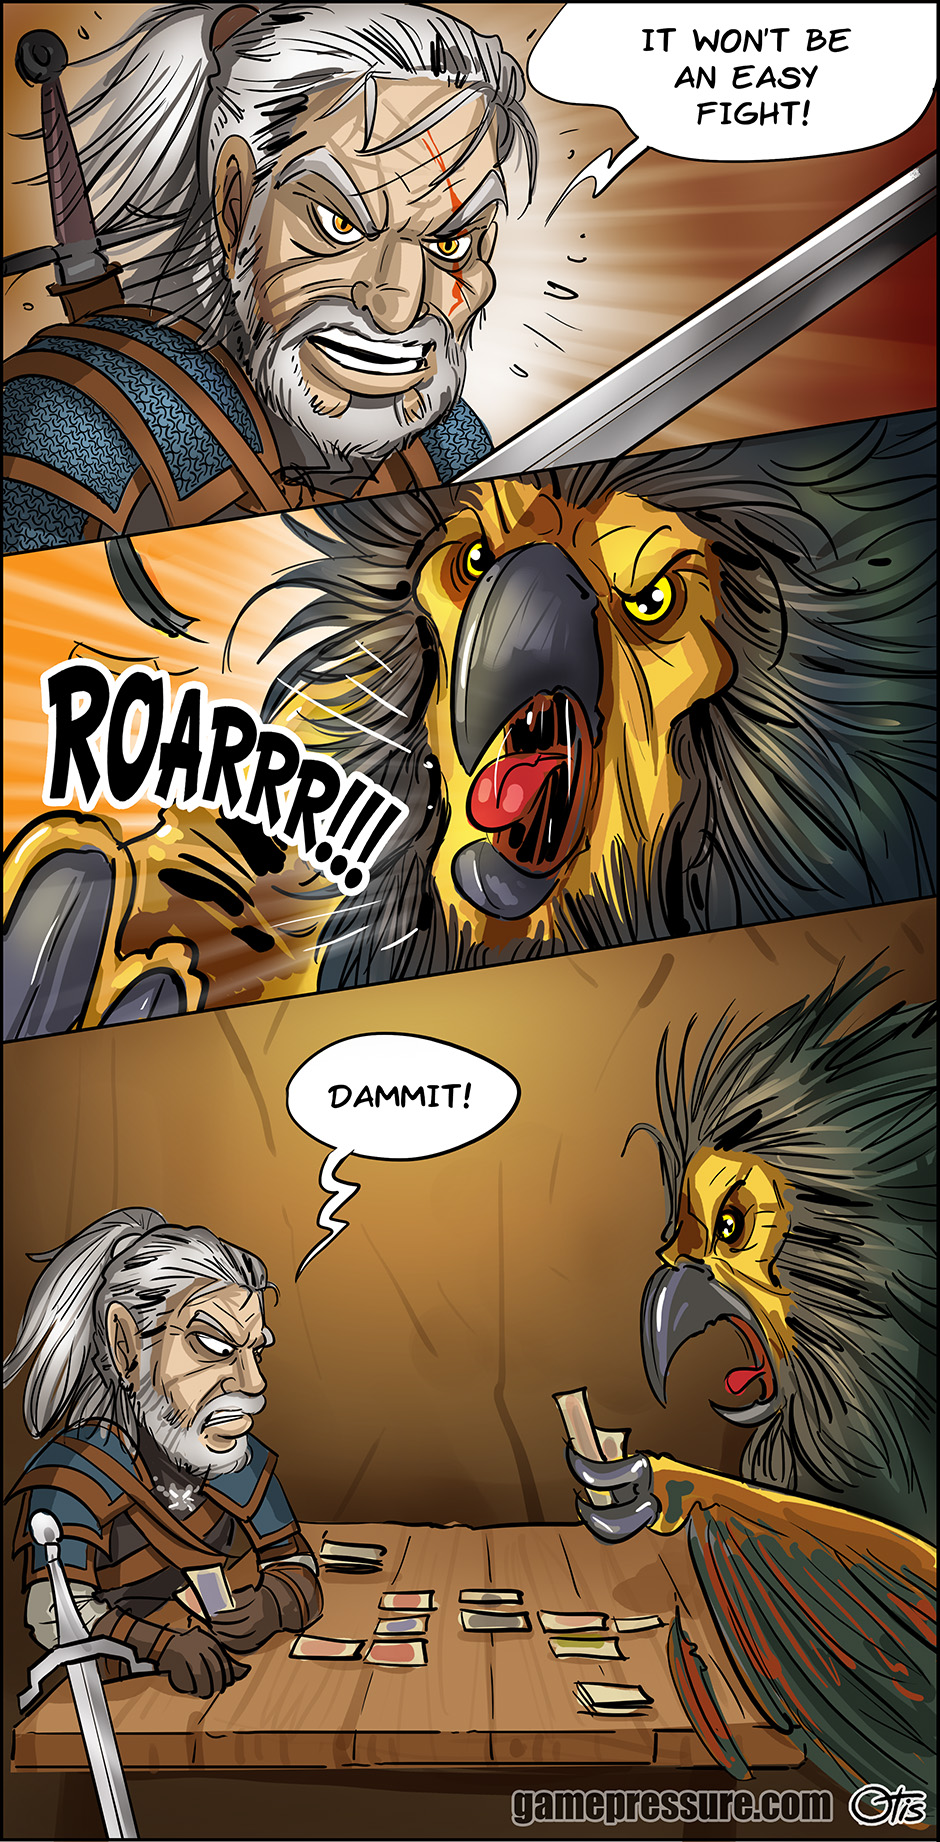 Geralt faces a dangerous monster, comics Cartoon Games, #218. The life of a witcher is not an easy one. Geralt faces dangerous opponents every day.